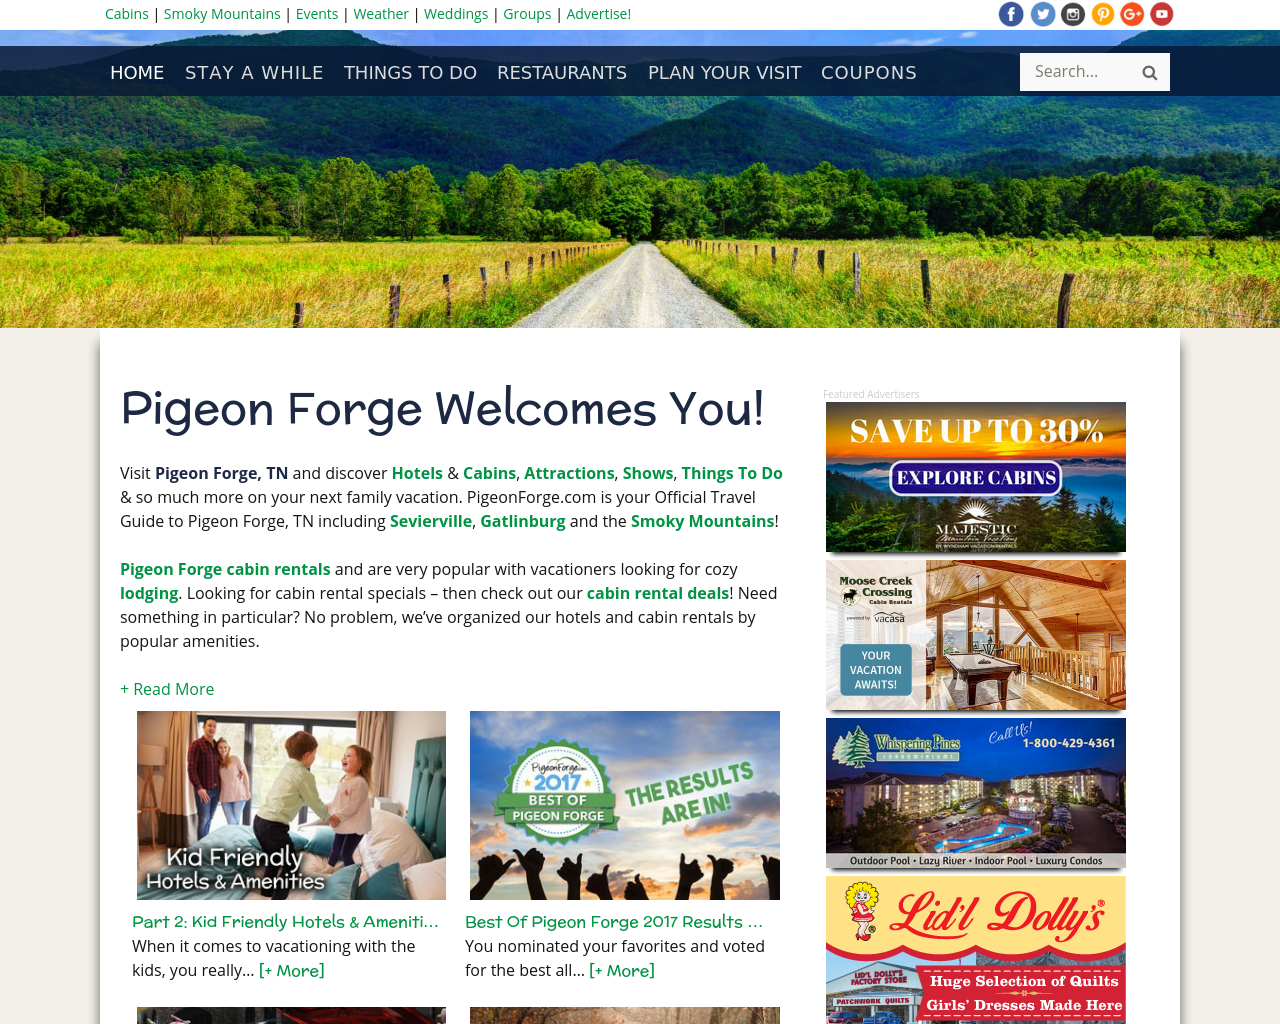 Pigeon-Forge-and-the-Smoky-Mountains-Advertising-Reviews-Pricing